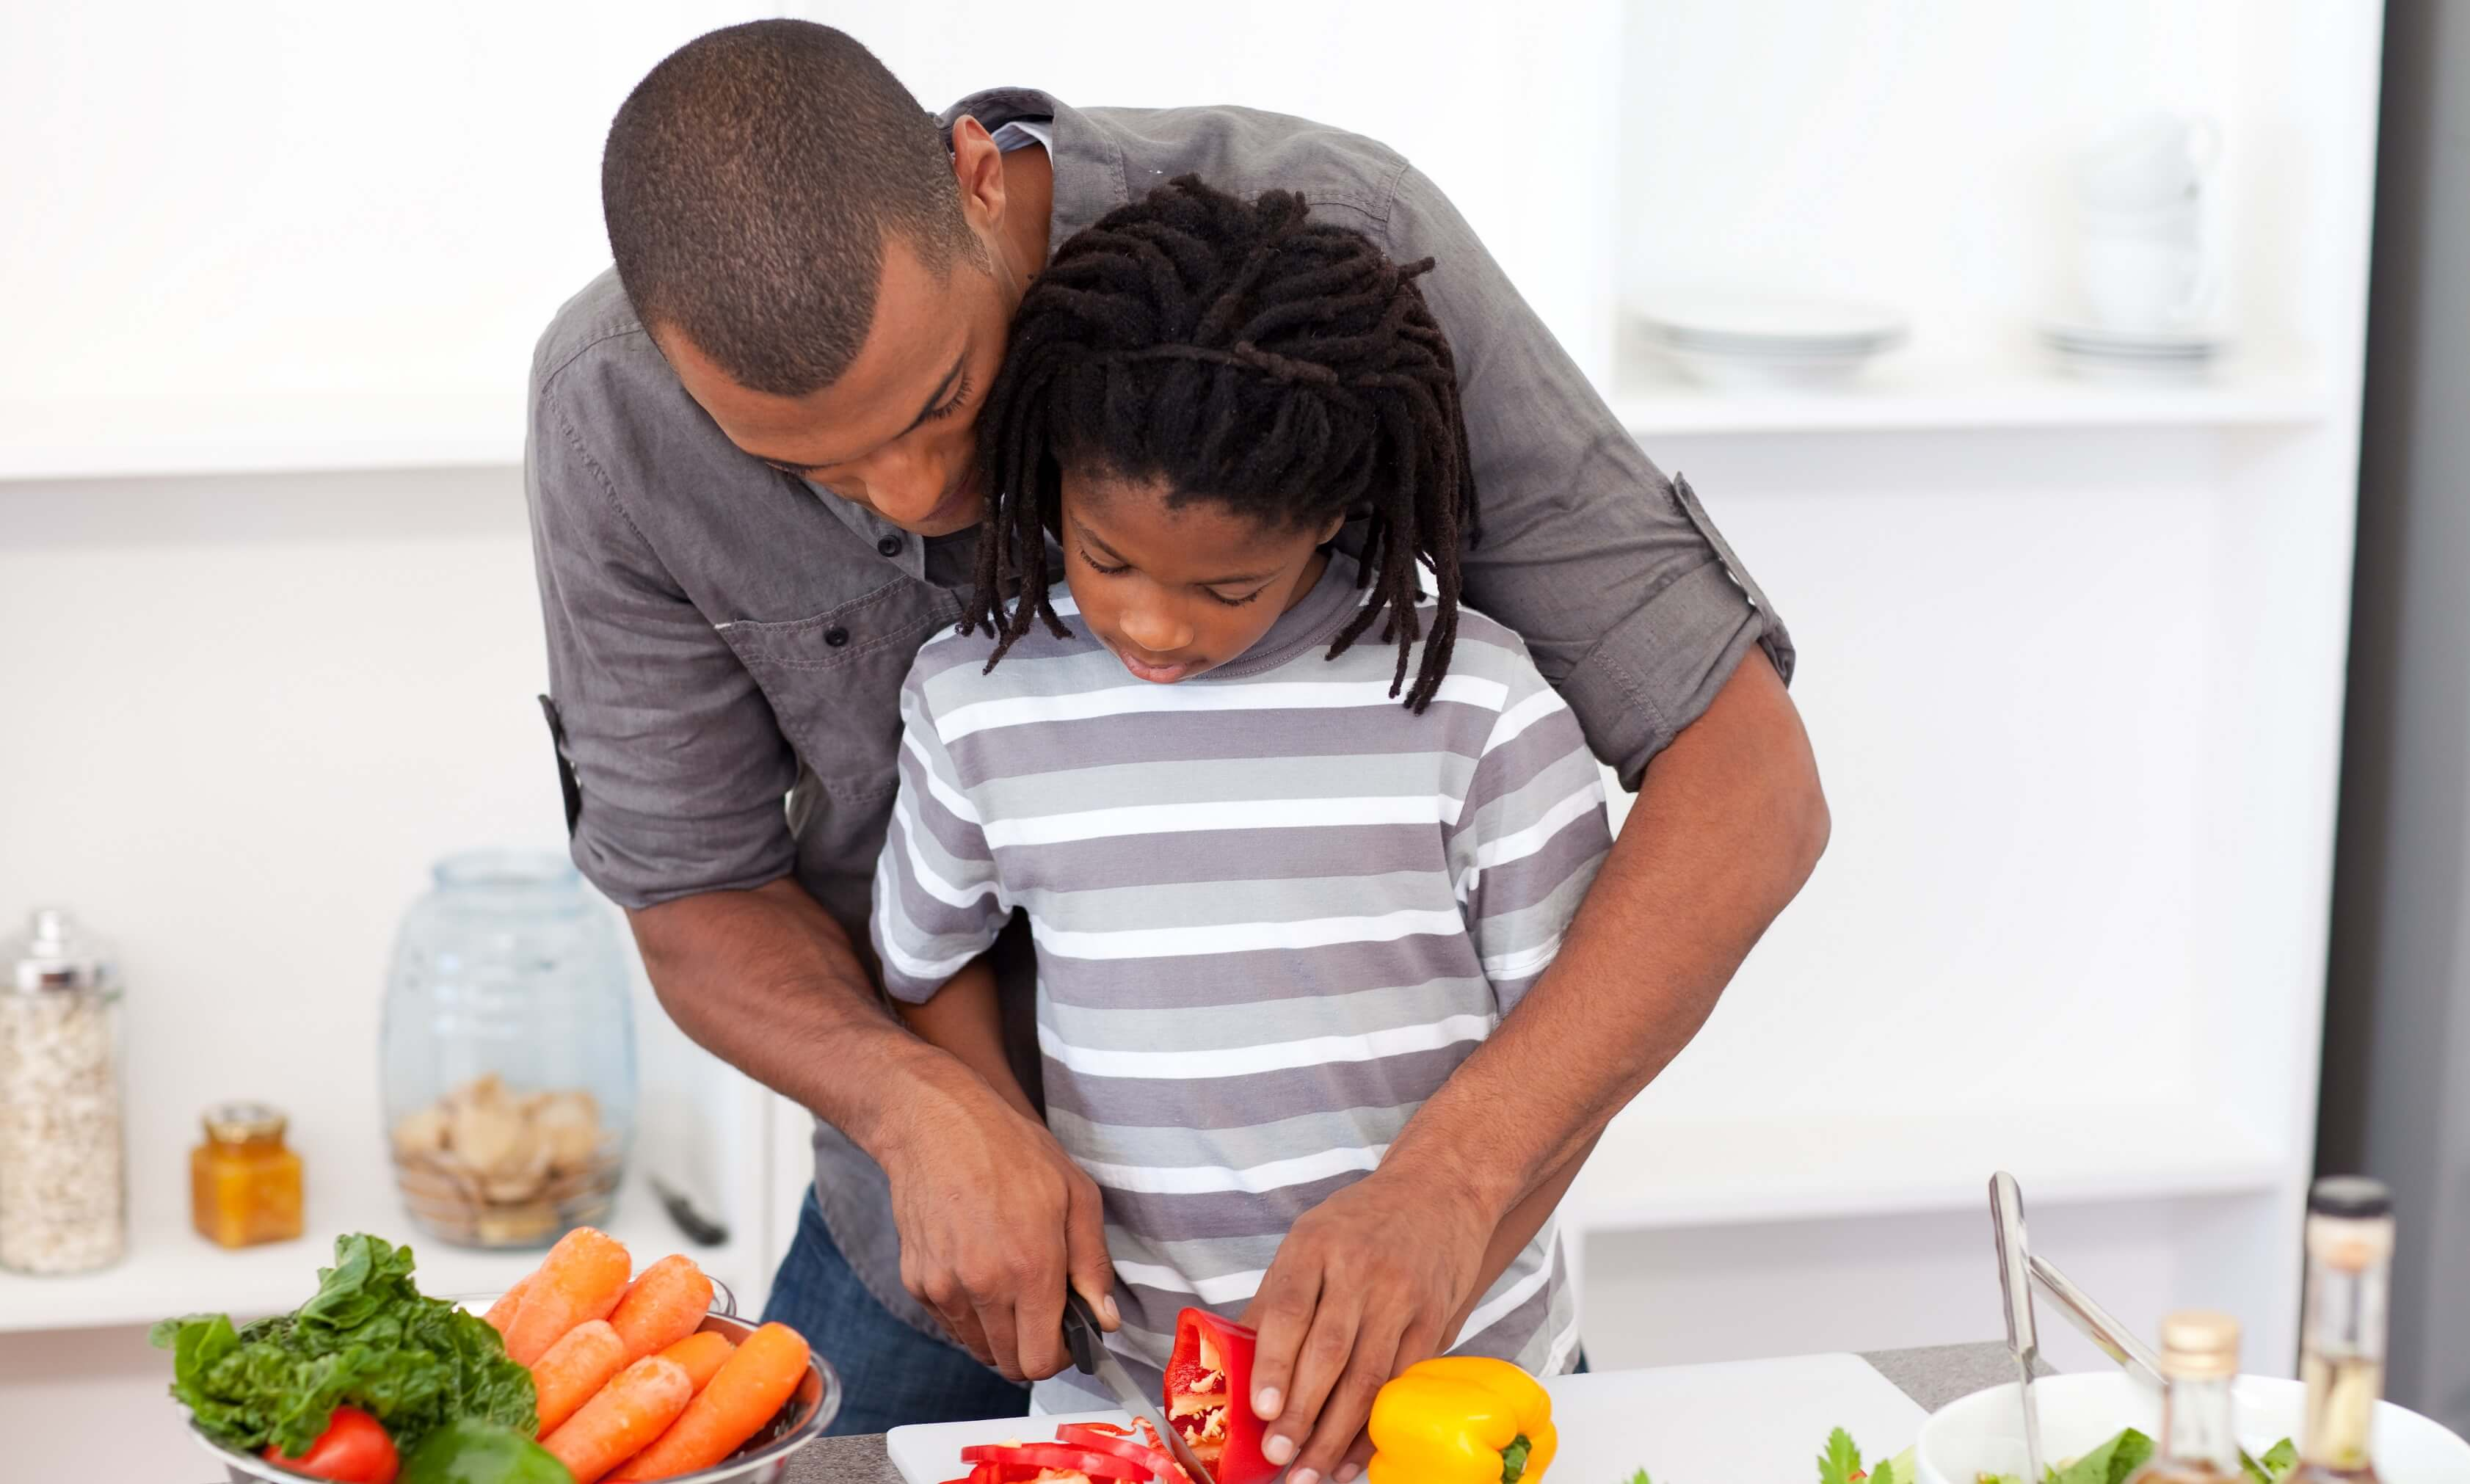 Father and son cutting vegetables for a salad